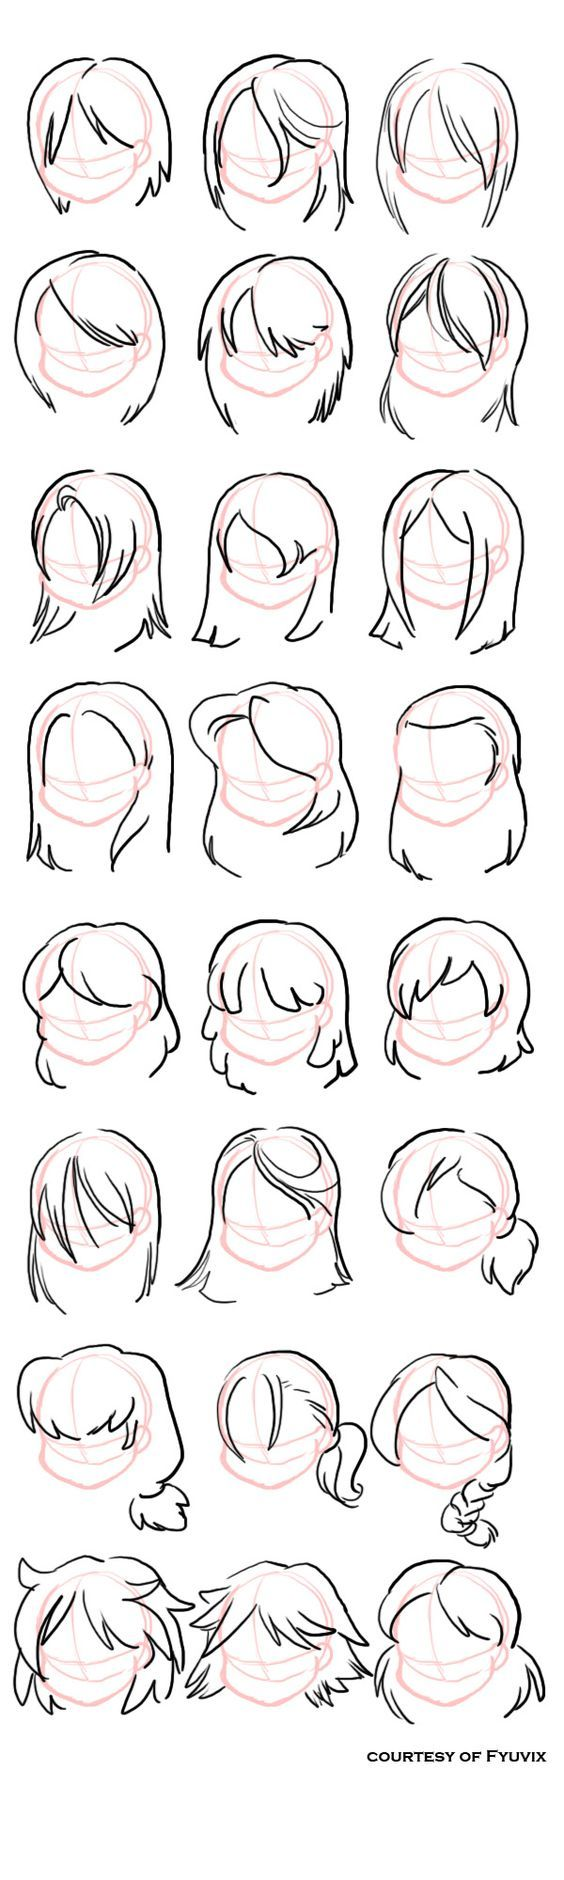 2 year old boy hairstyles  best images about manga on pinterest